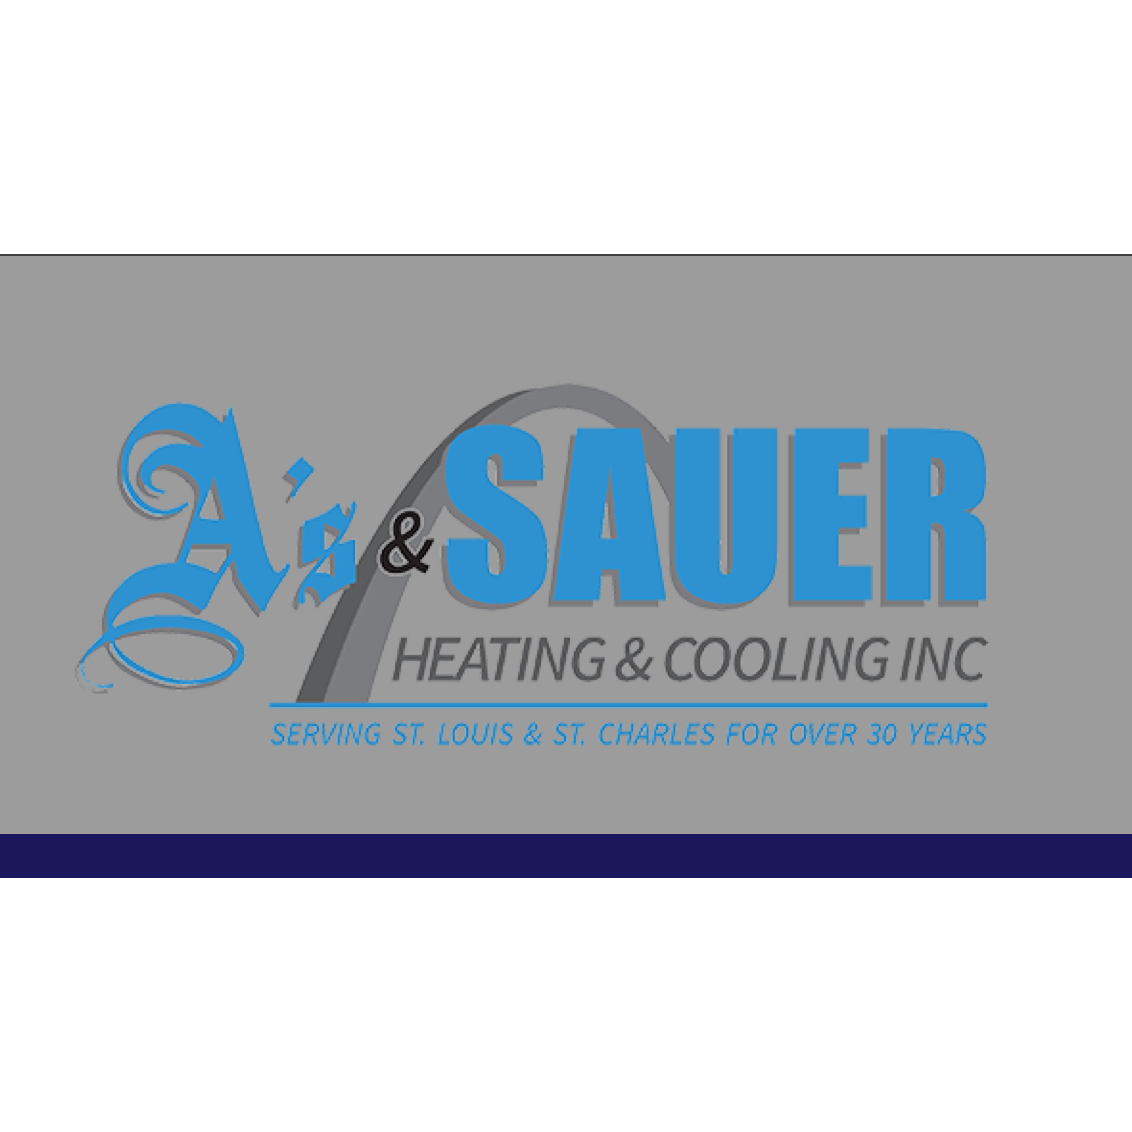 A's and Sauer Cooling and Heating